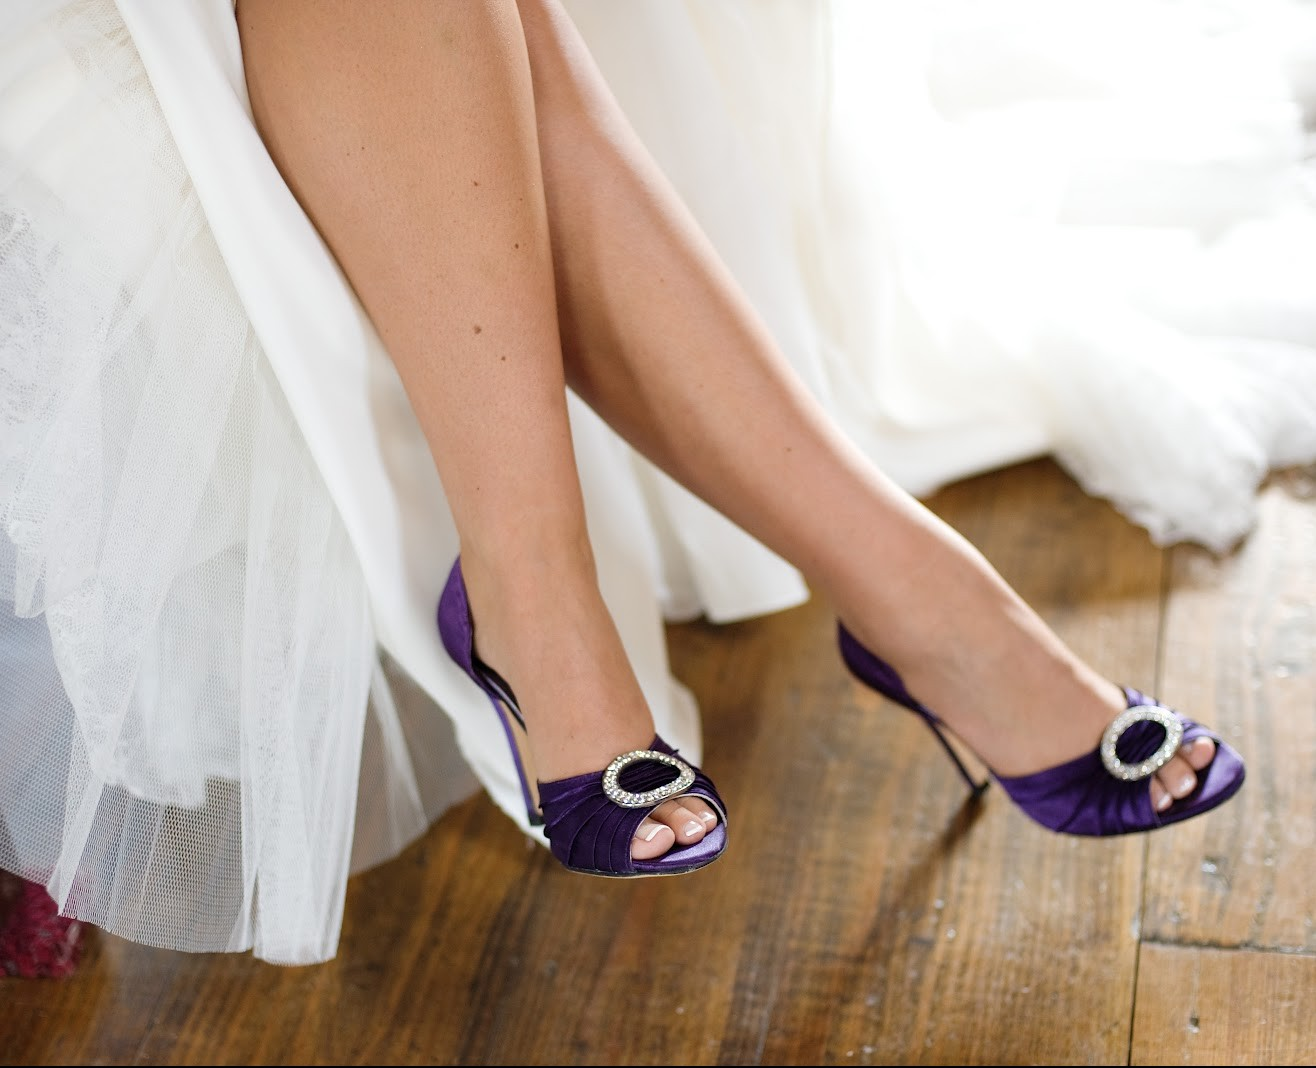 manolo blahnik bridal shoes online